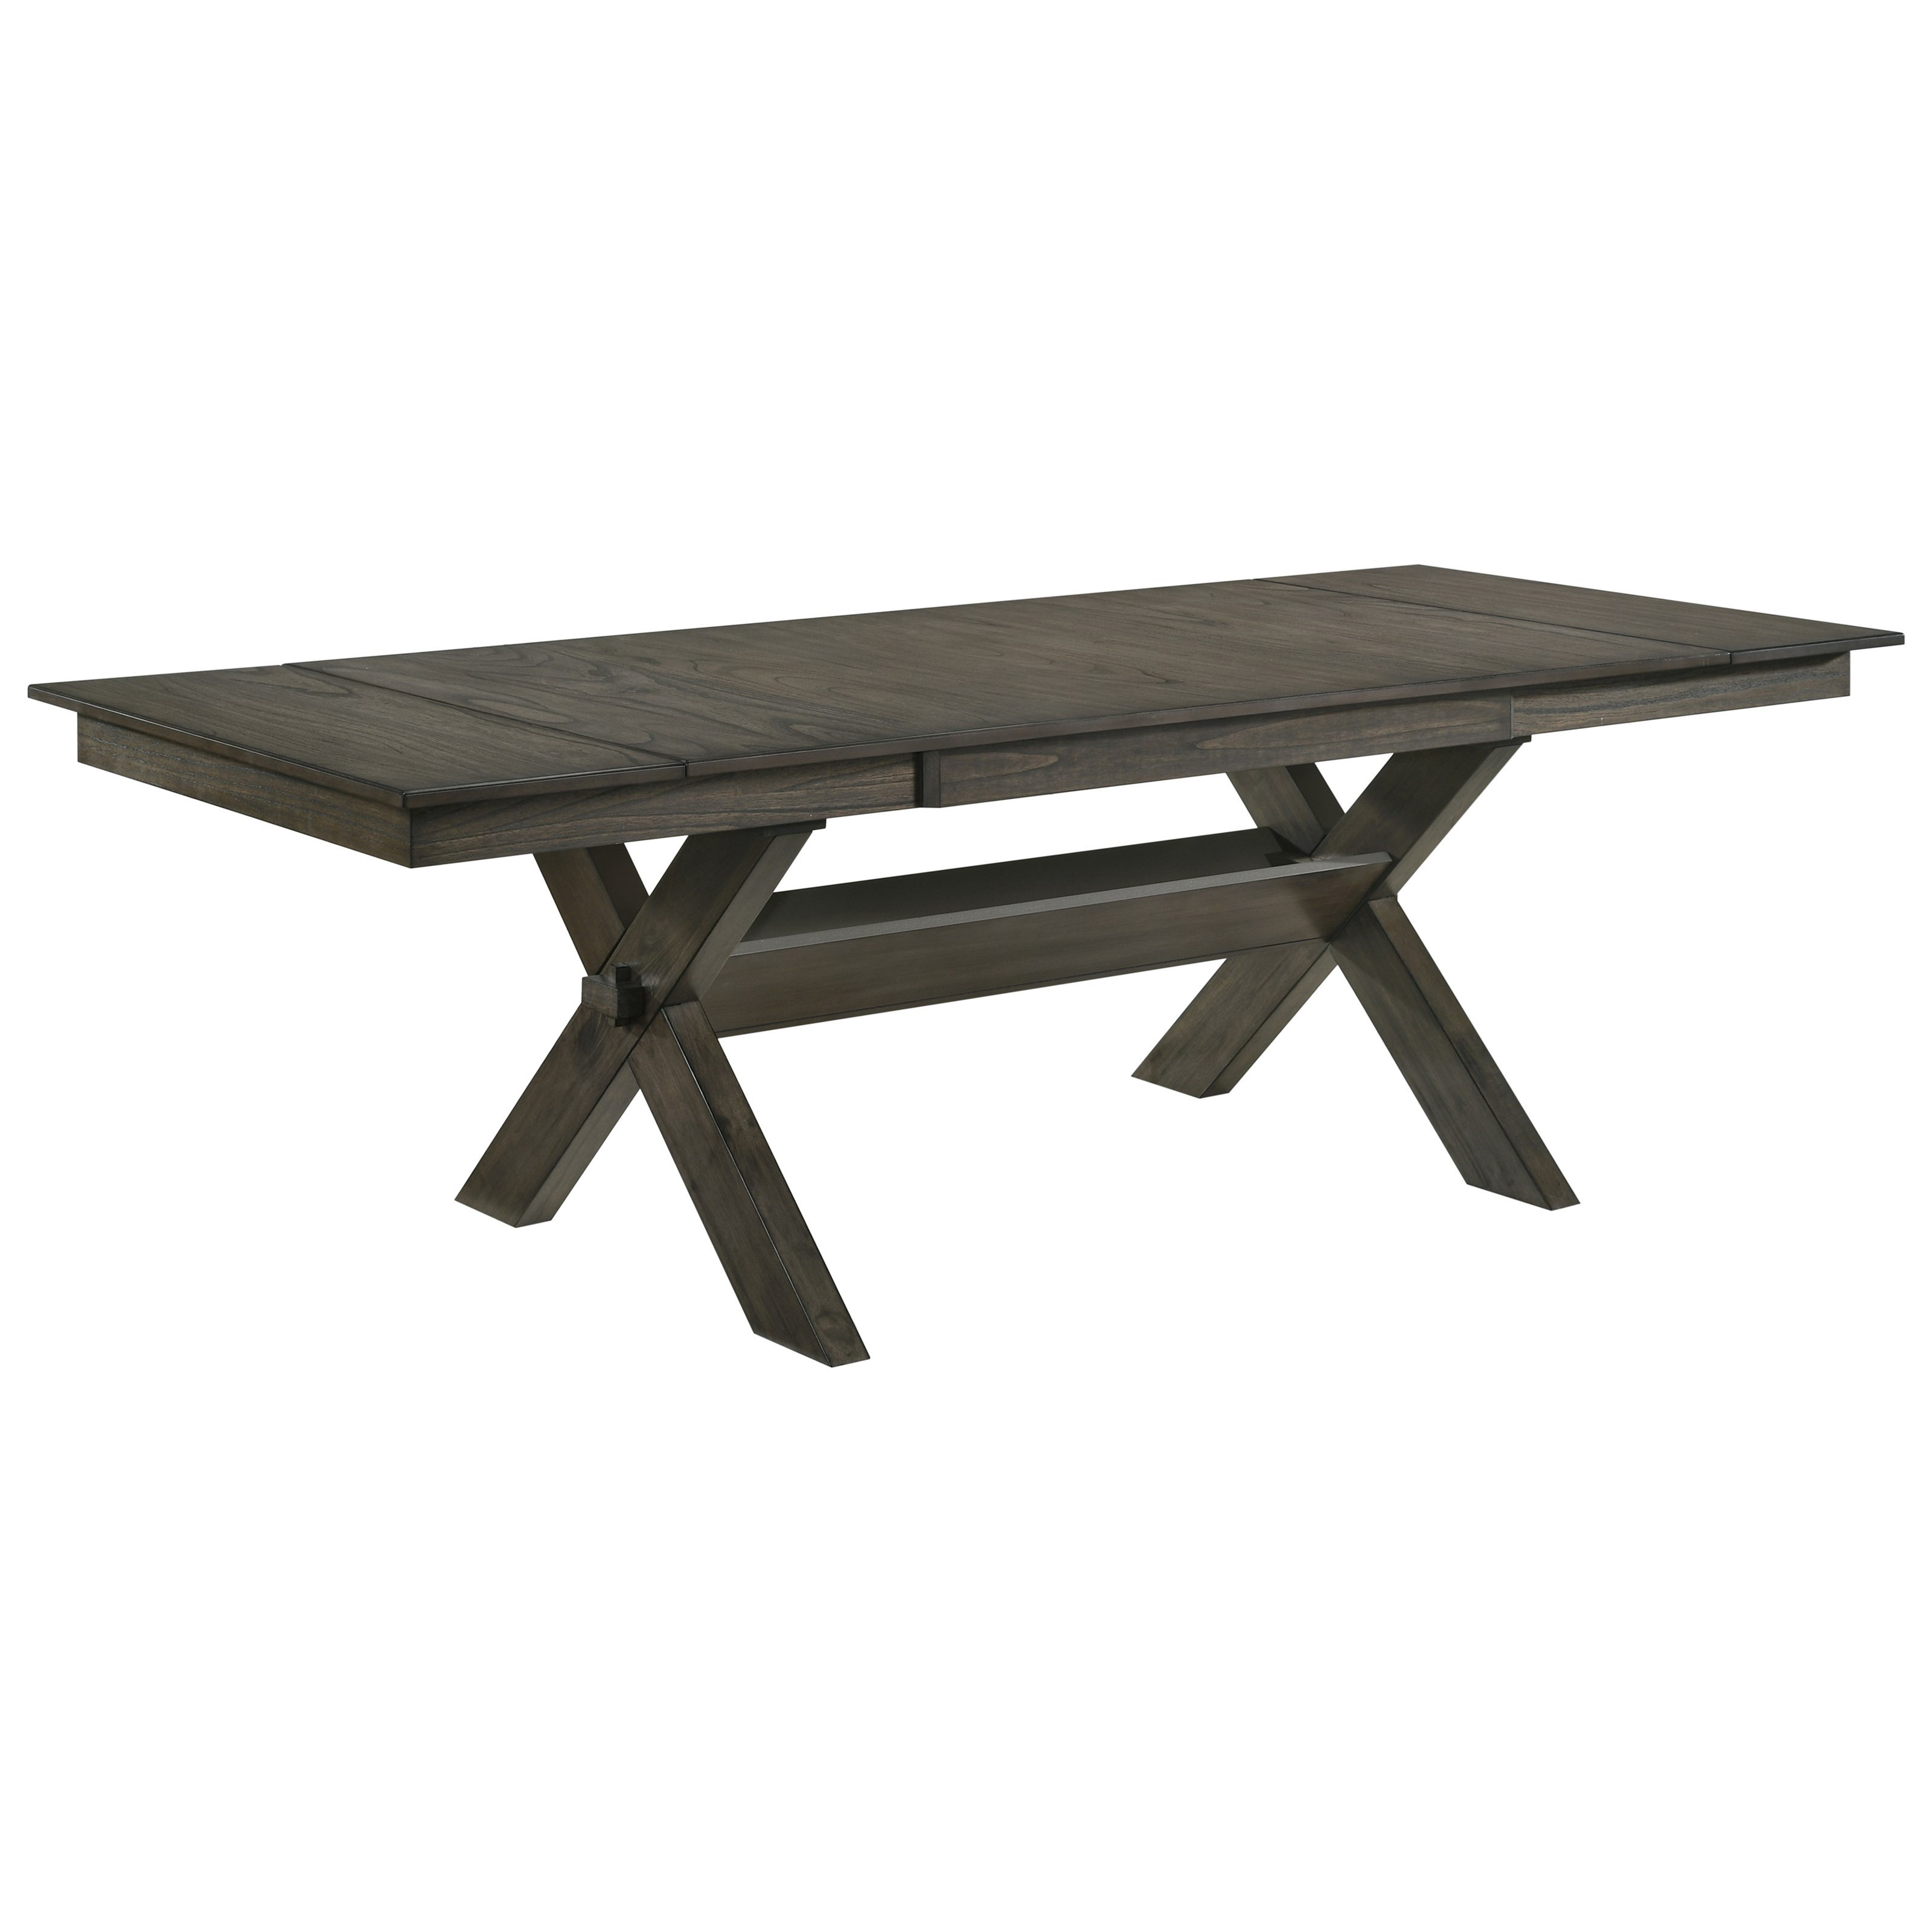 Gulliver Dining Table by New Classic at Furniture Superstore - Rochester, MN